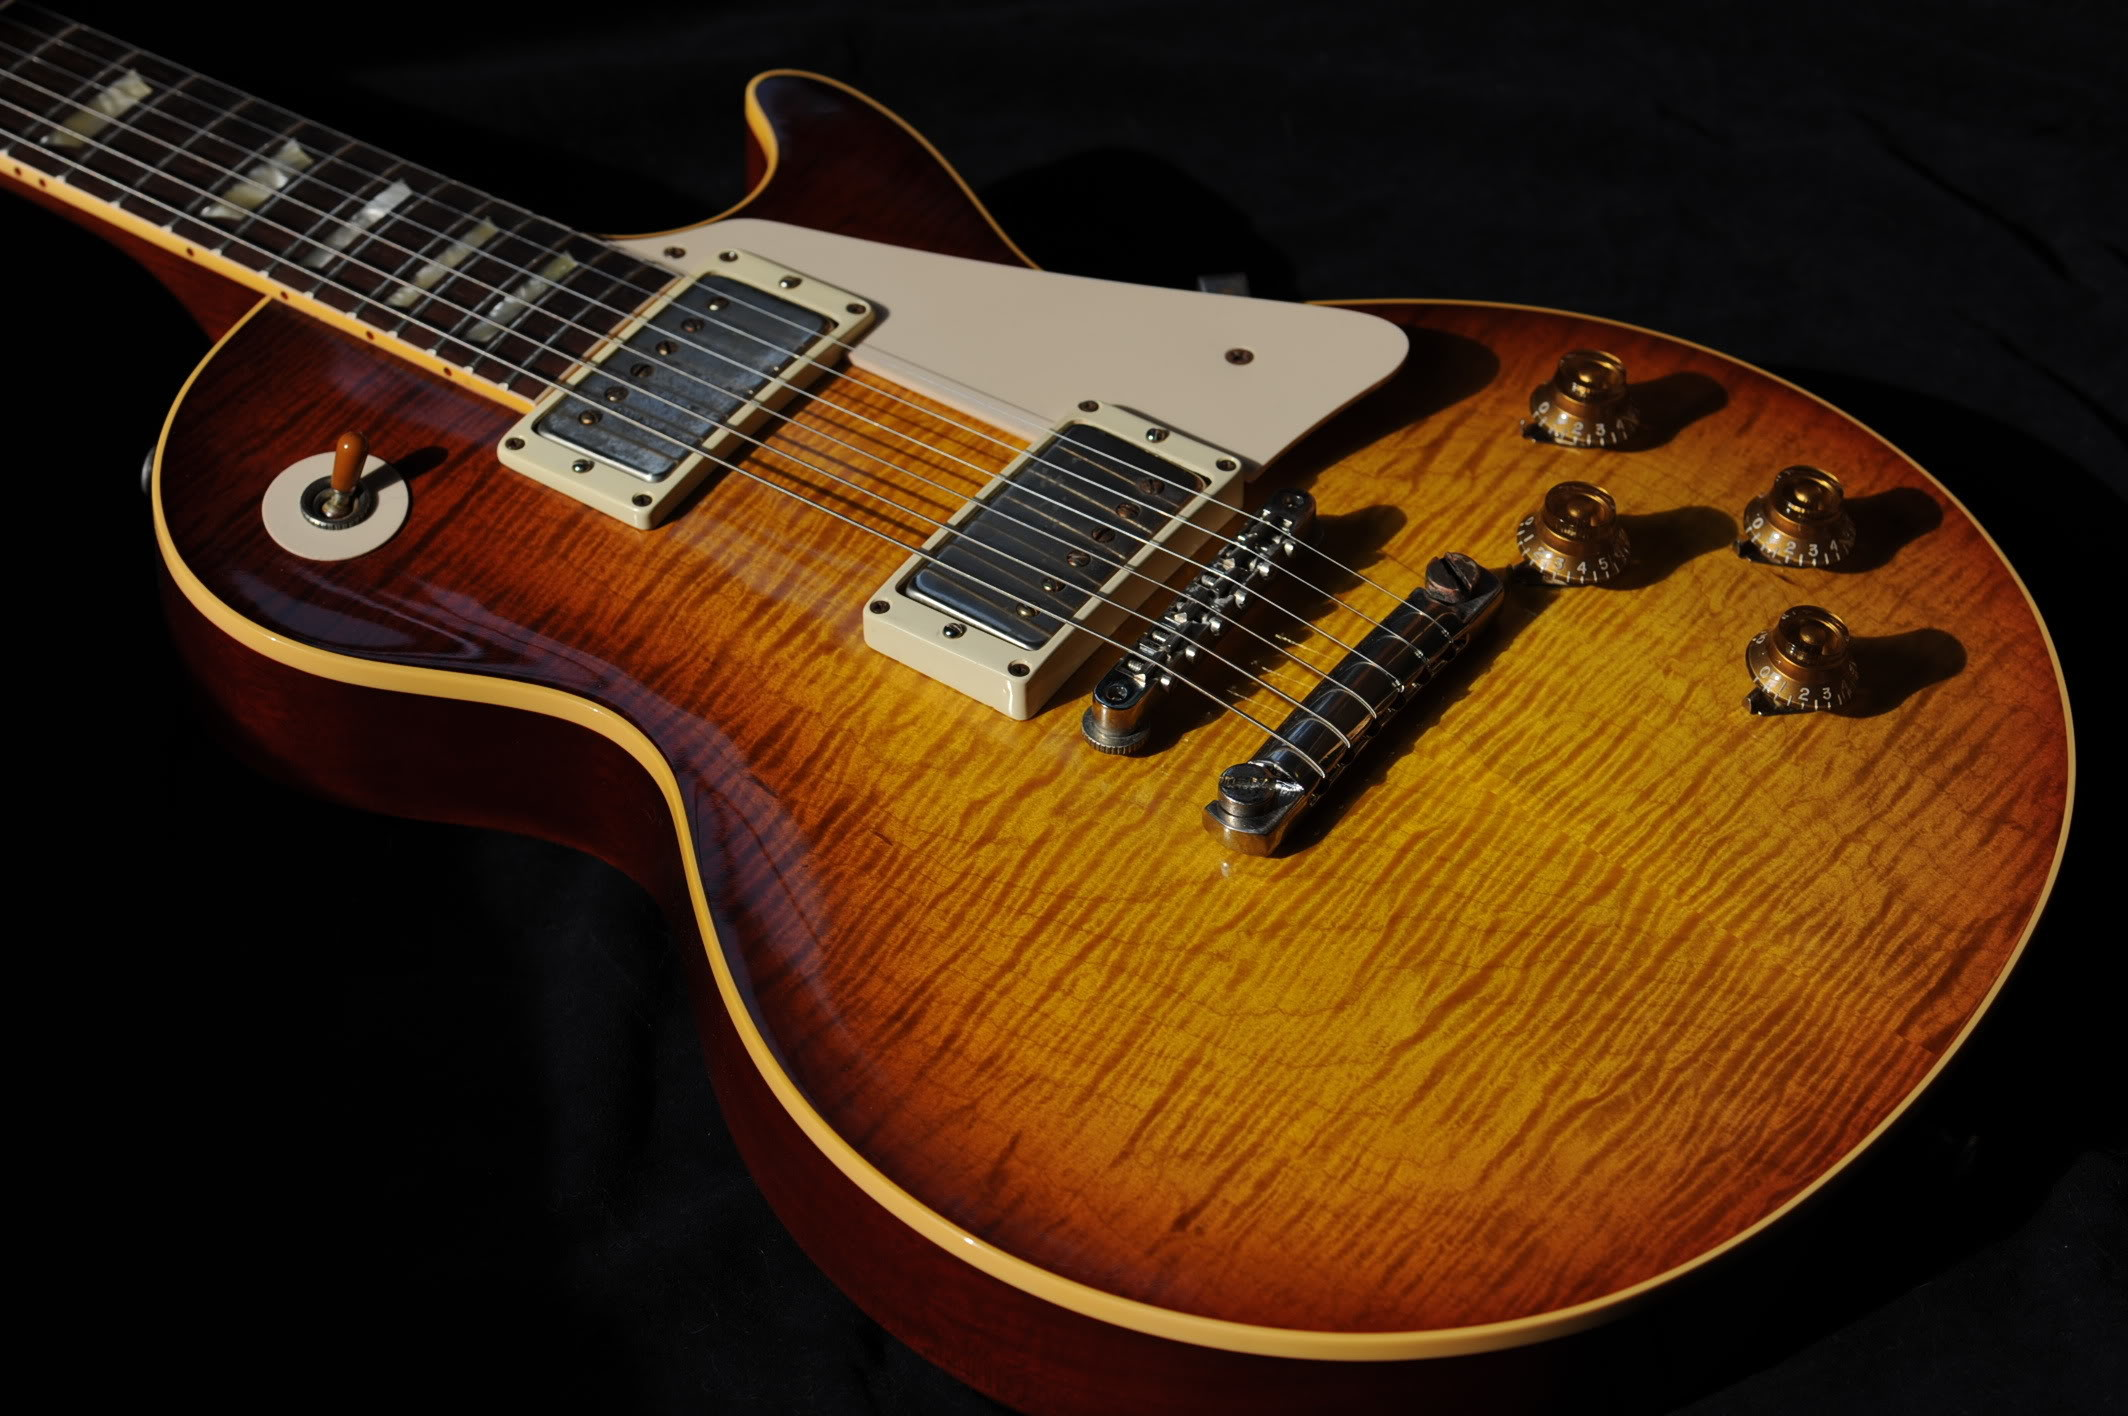 50 Gibson Guitar Wallpaper Hd Android Iphone Desktop Hd Backgrounds Wallpapers 1080p 4k 2128x1416 2020